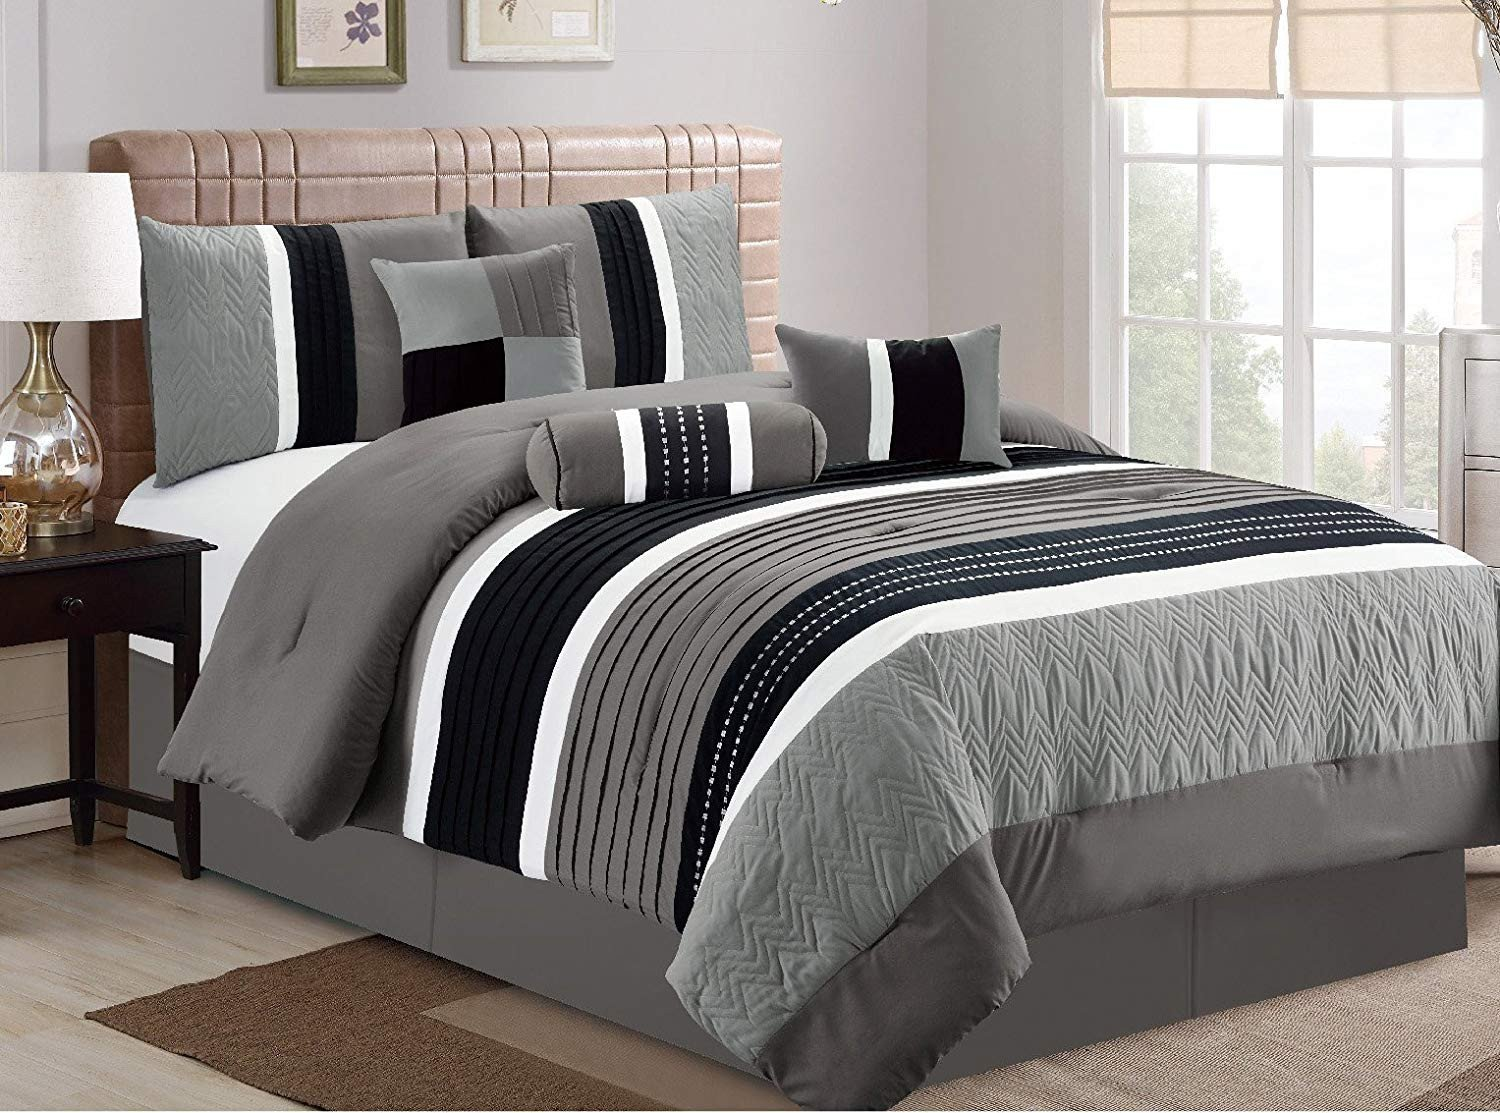 Cheap Bedroom Comforter Set Lovely Esca 7 Piece Closeout Luxury Bed In Bag forter Set Queen Grey